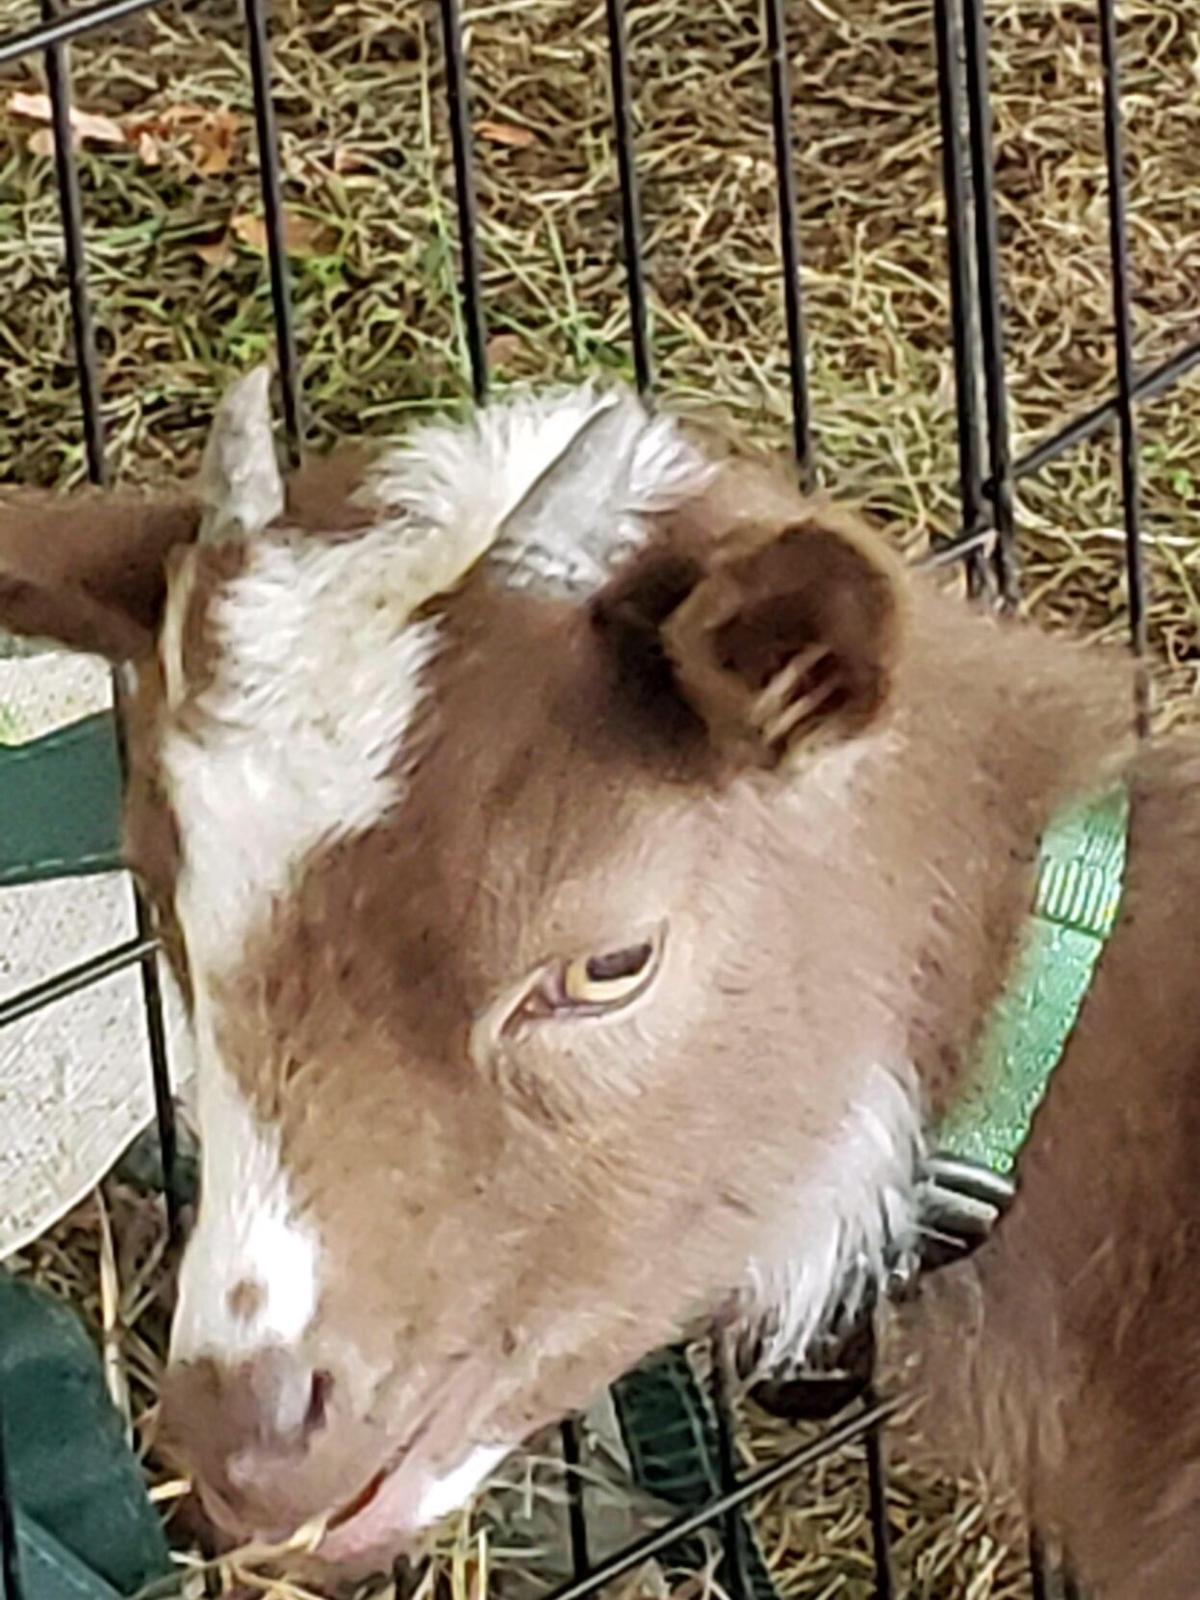 Branford Compassion Club's Animal Awareness day turns to month-long event